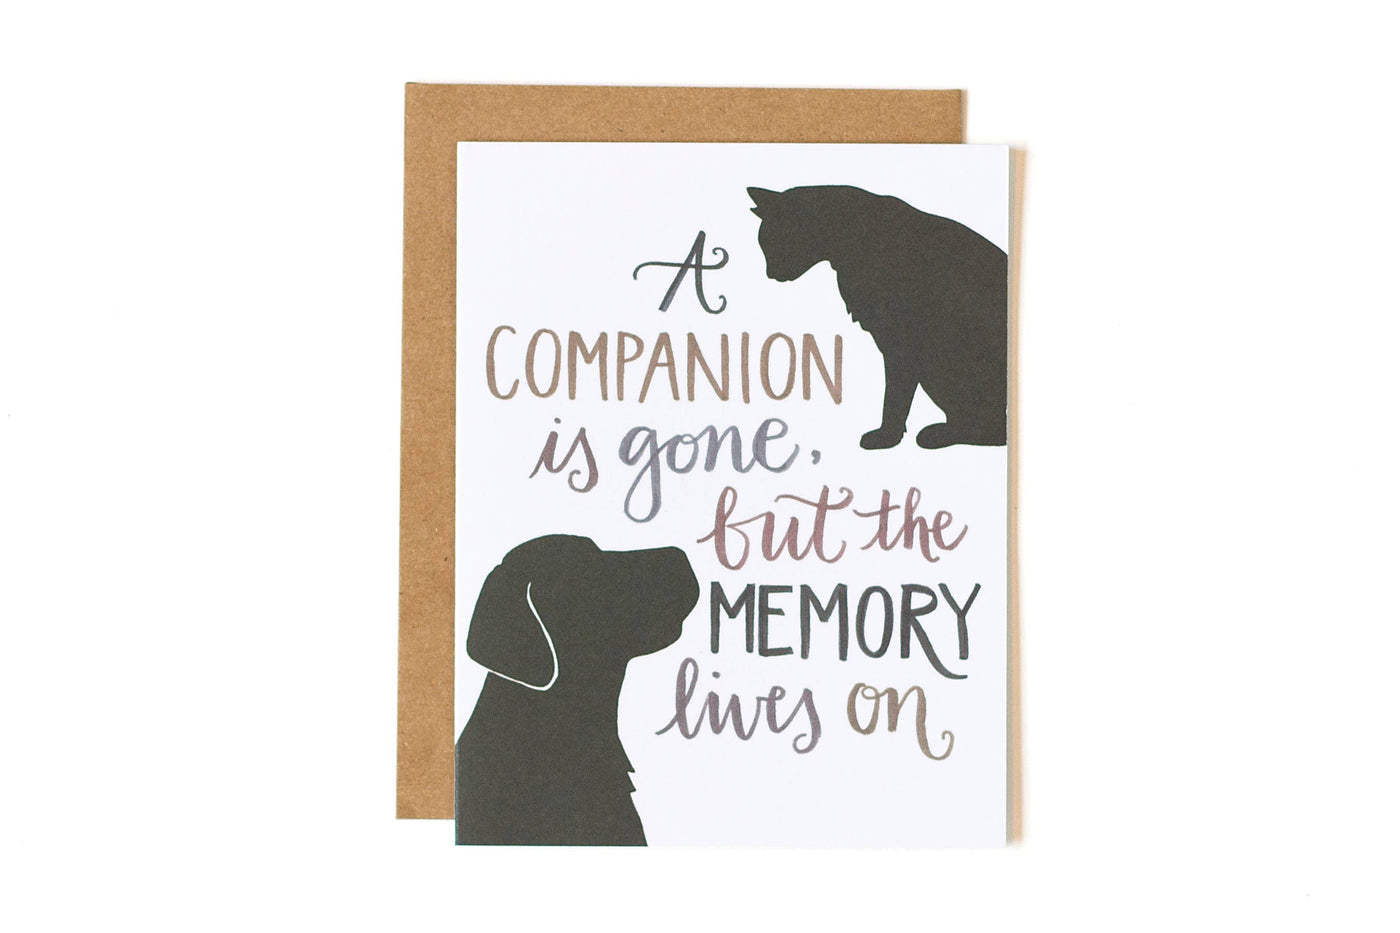 A Companion is Gone, but the Memory Lives On Sympathy Pet Card